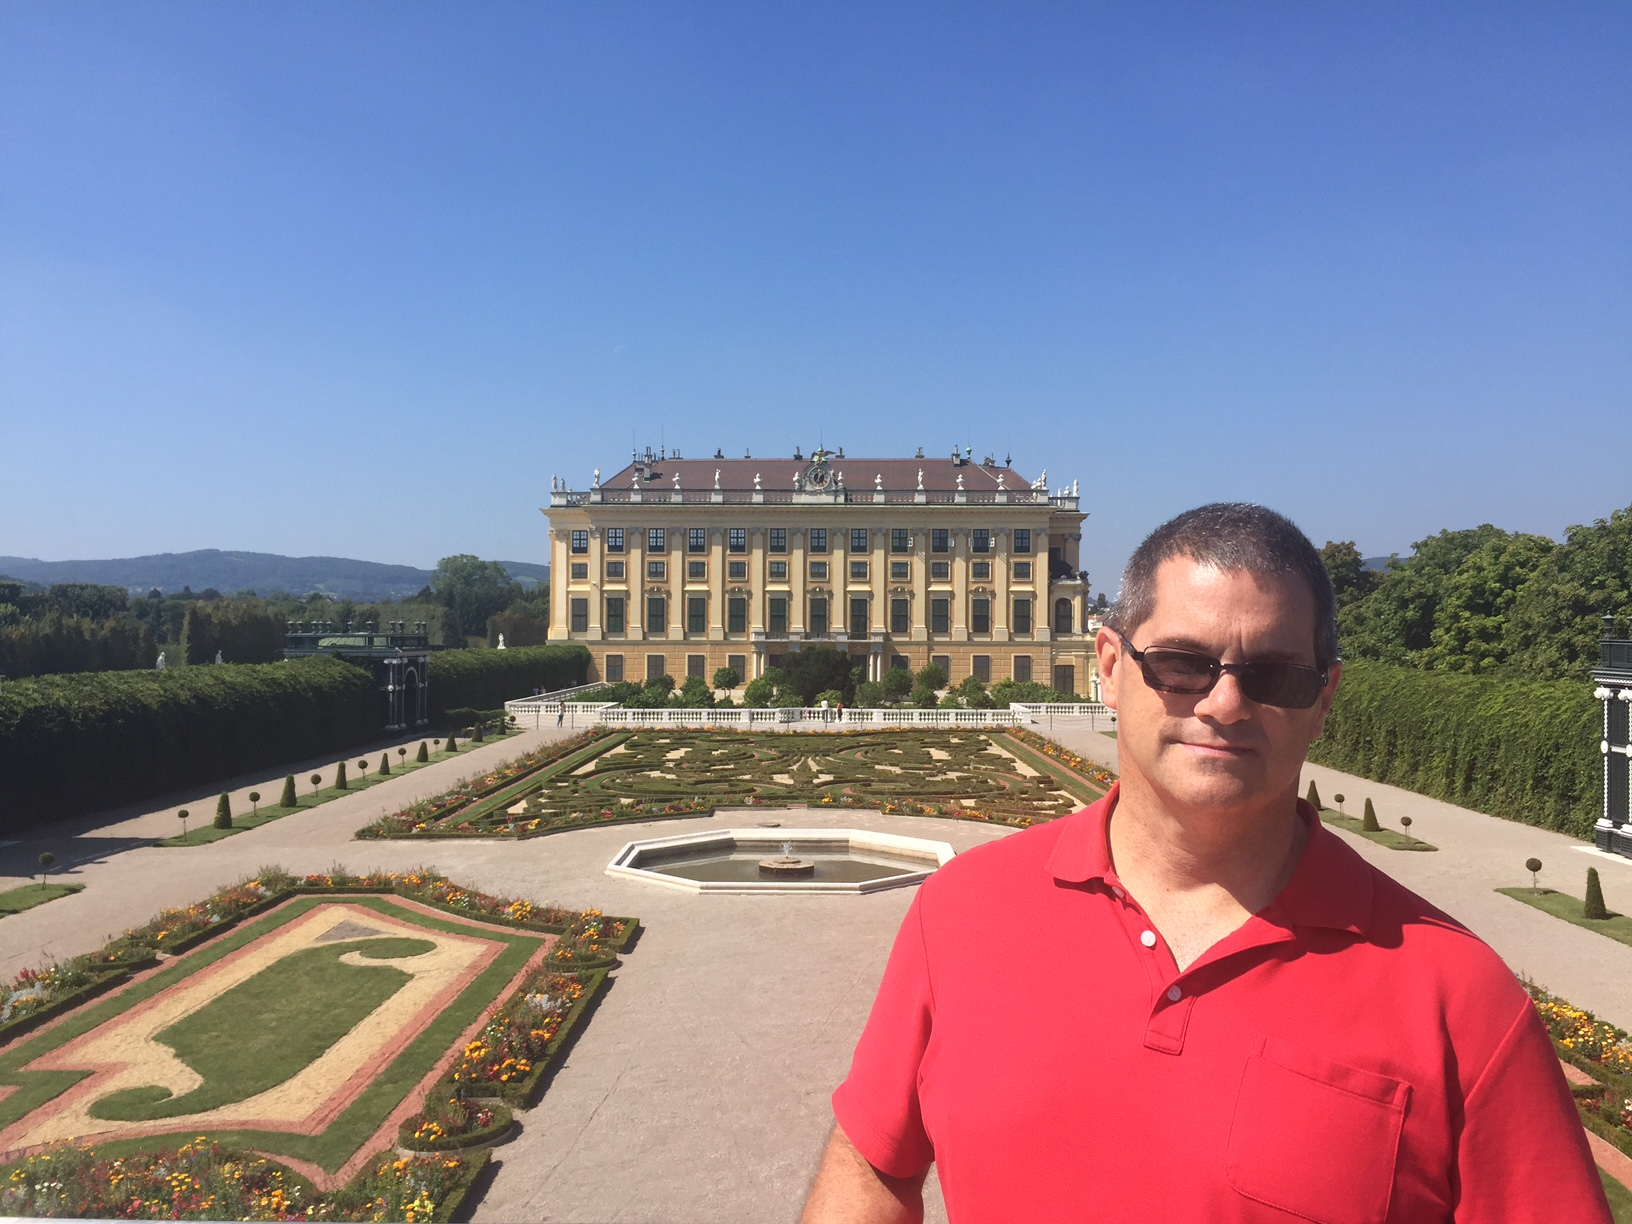 Shoenbrunn Palace